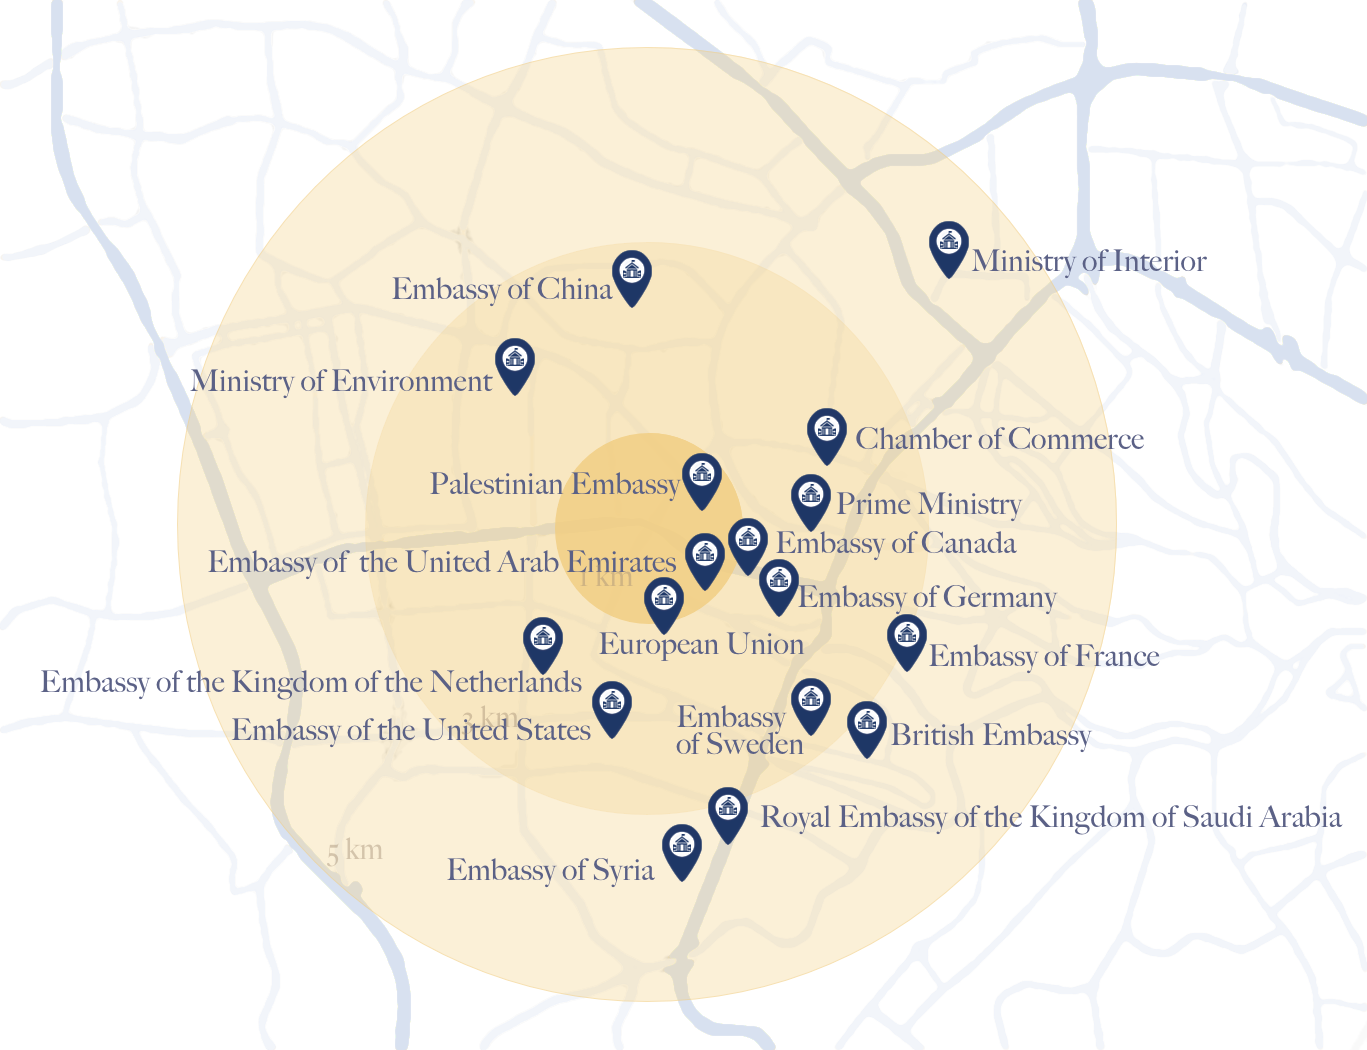 Map of Embassies around The Ritz-Carlton Residences, Amman